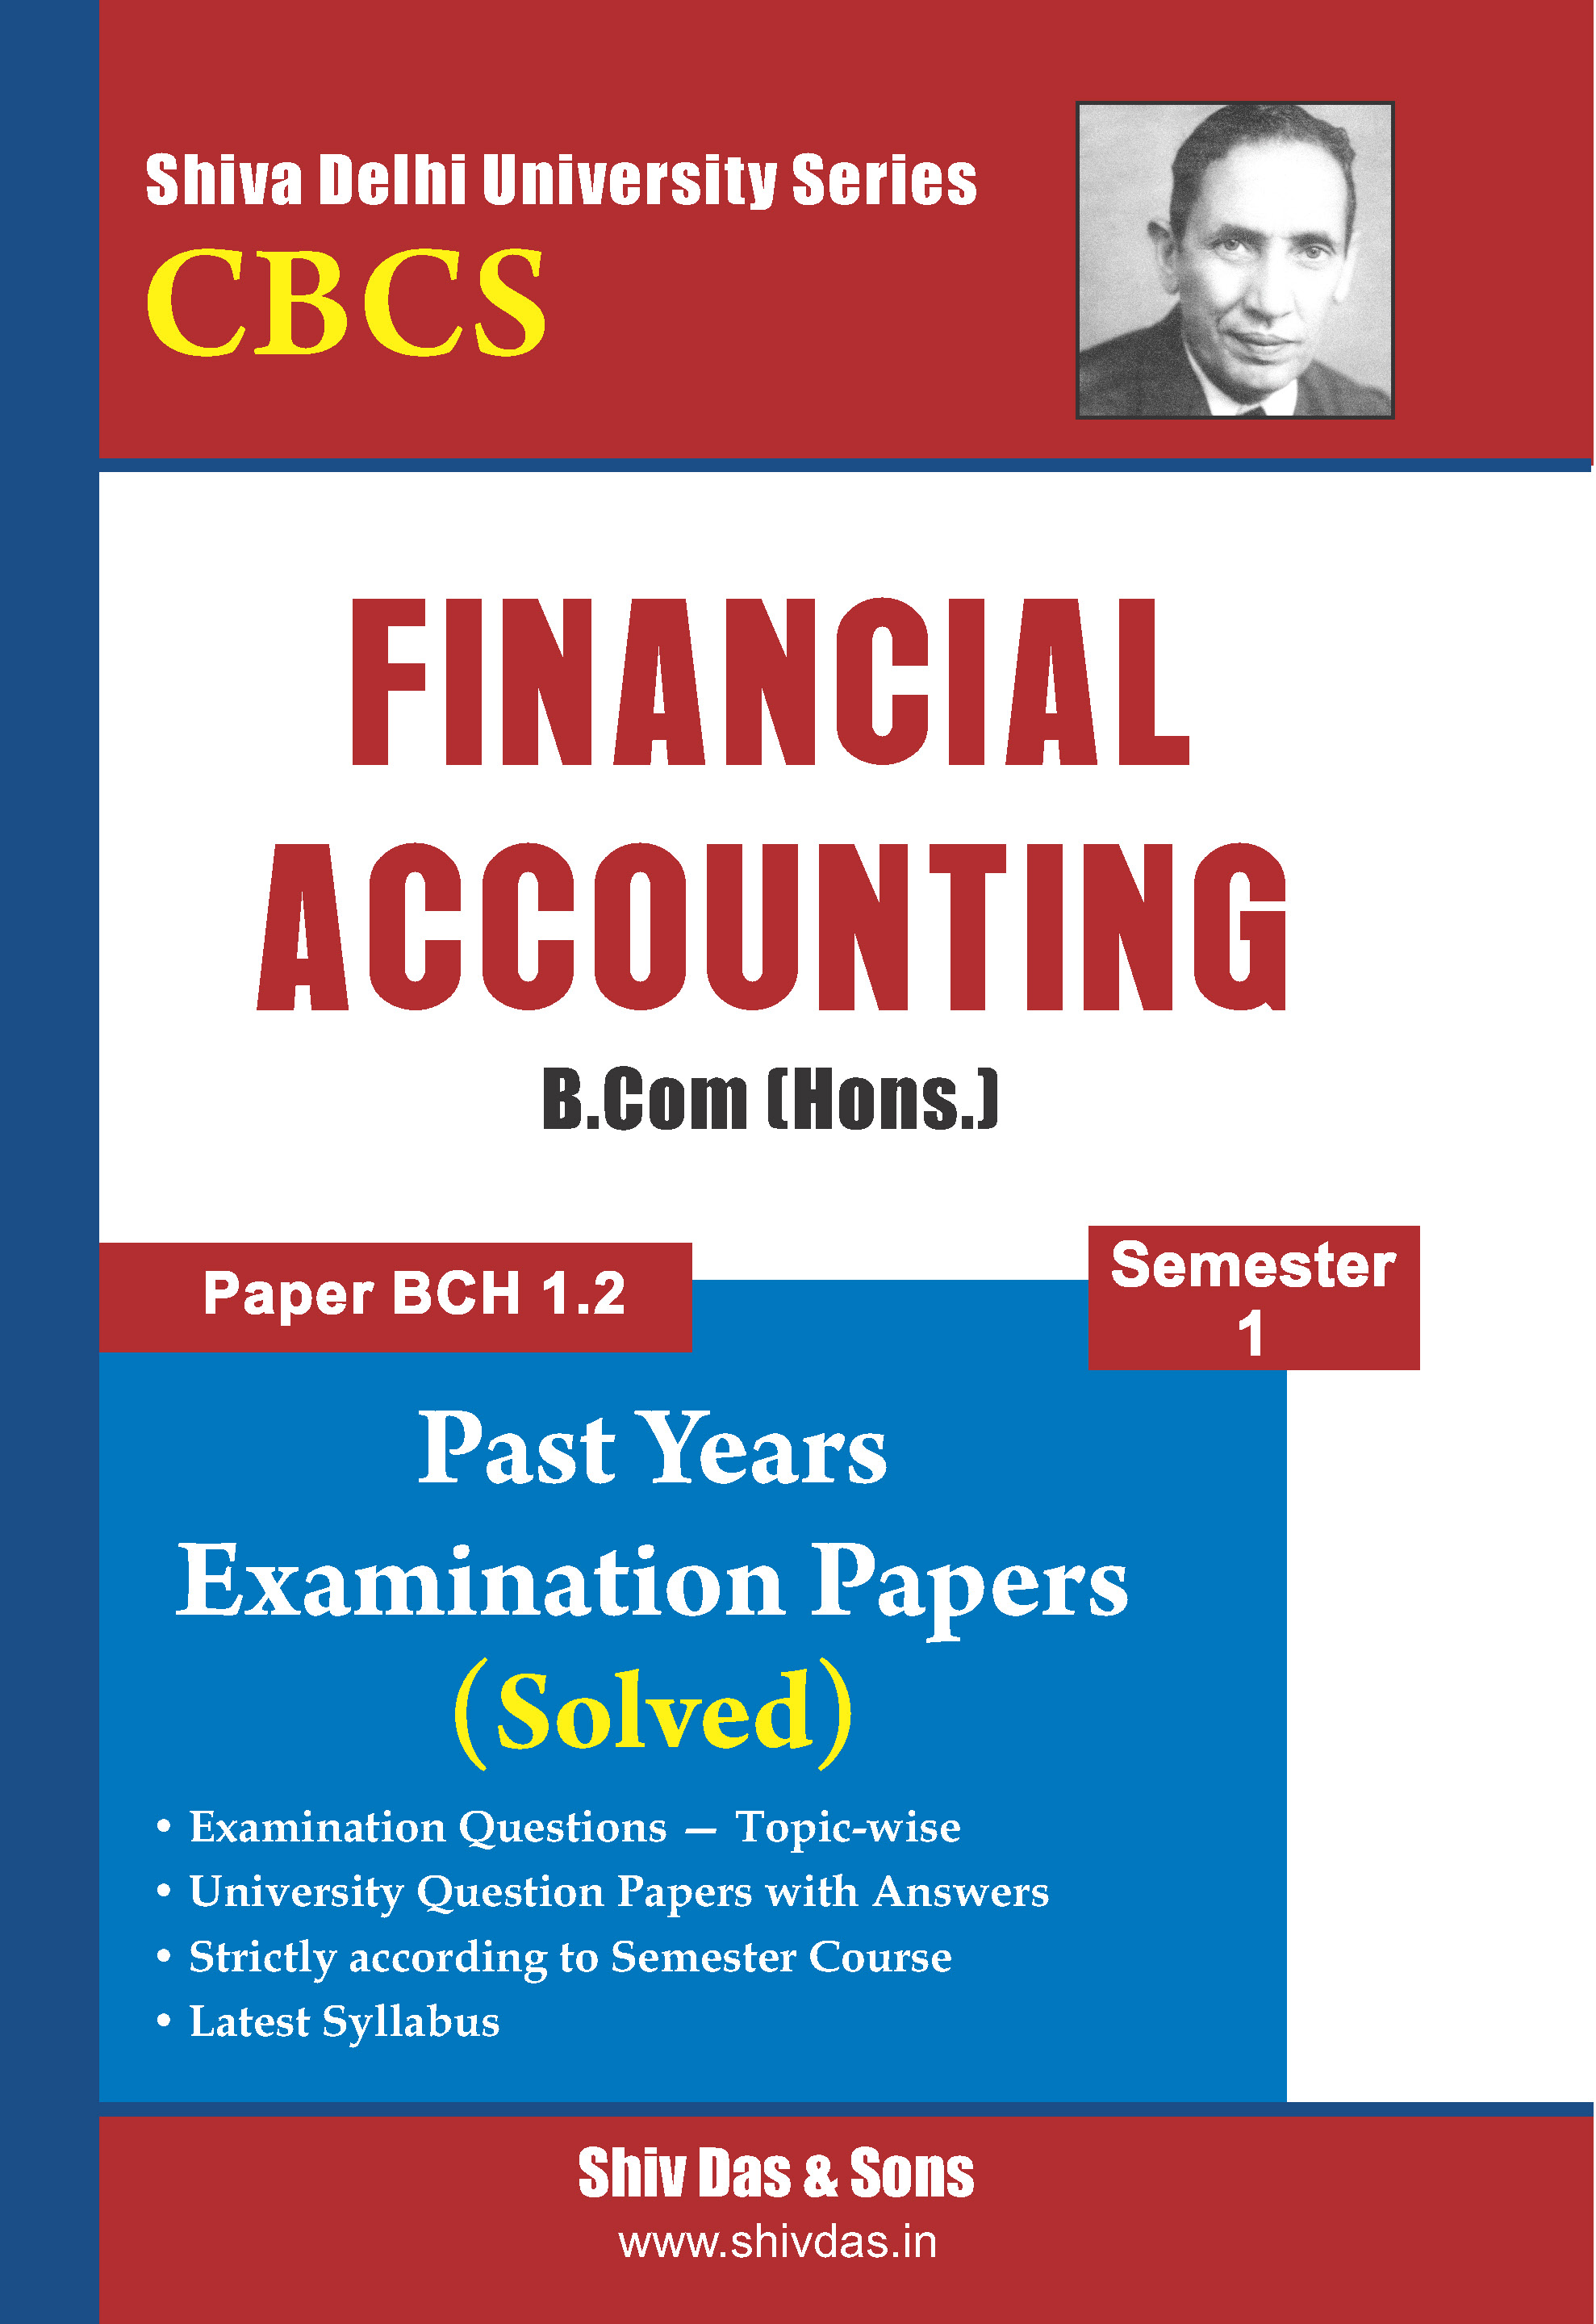 B.Com Hons. Semester-1 Financial Accounting